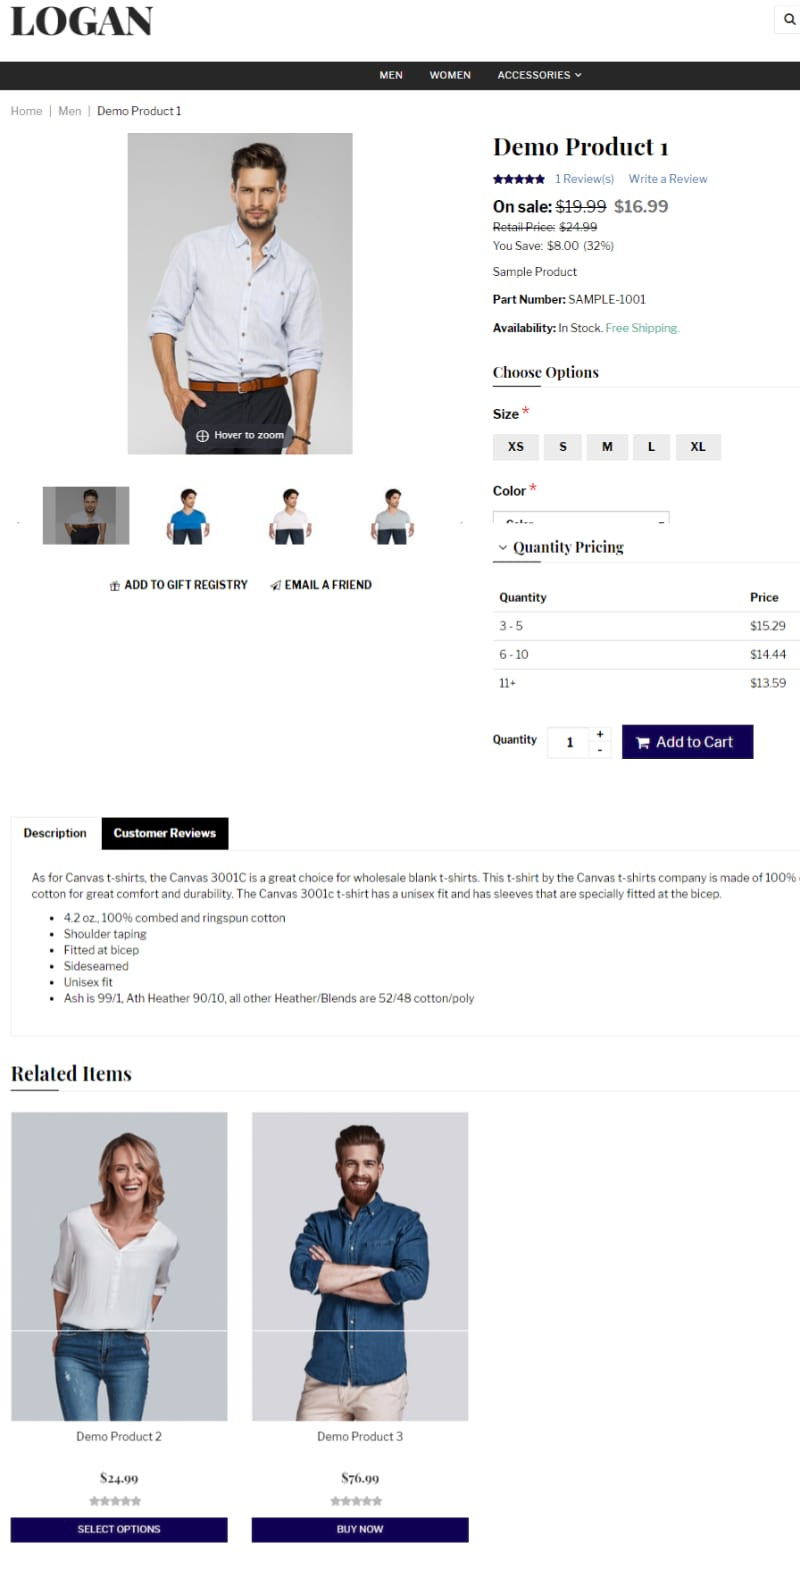 3dcart store product example to test SEO markup data